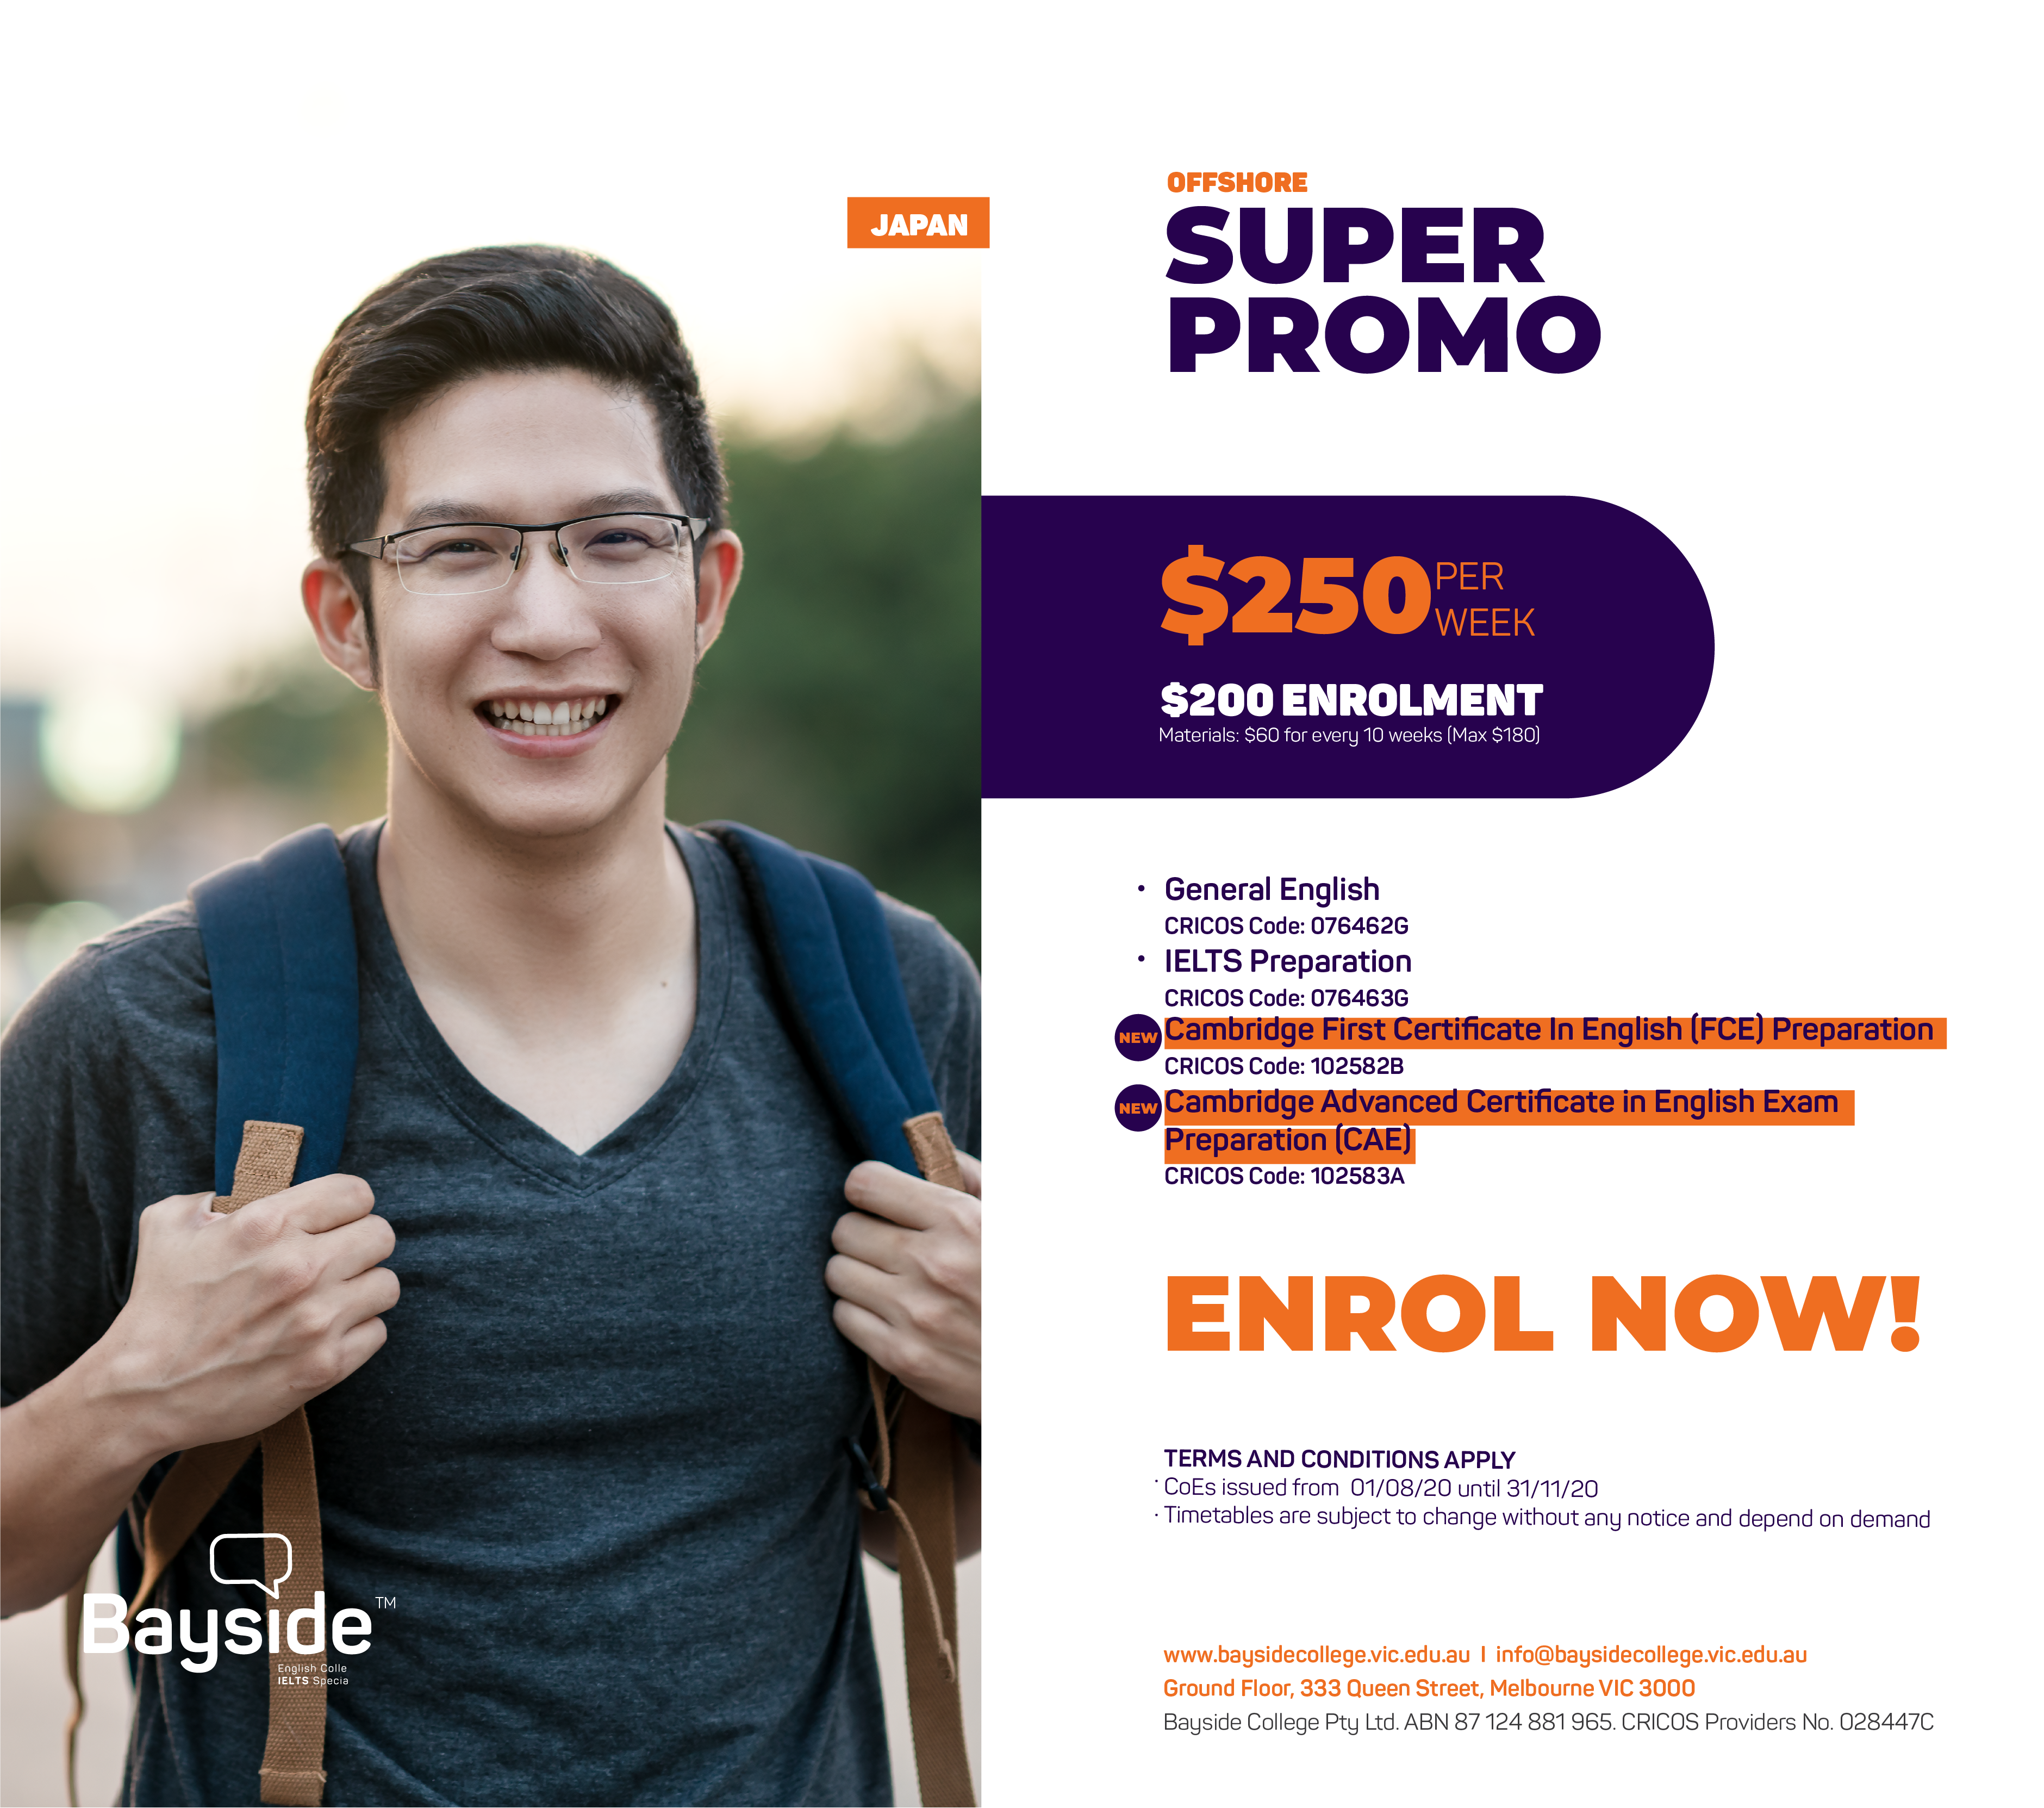 Bayside English College - Offshore Japanese Promotion